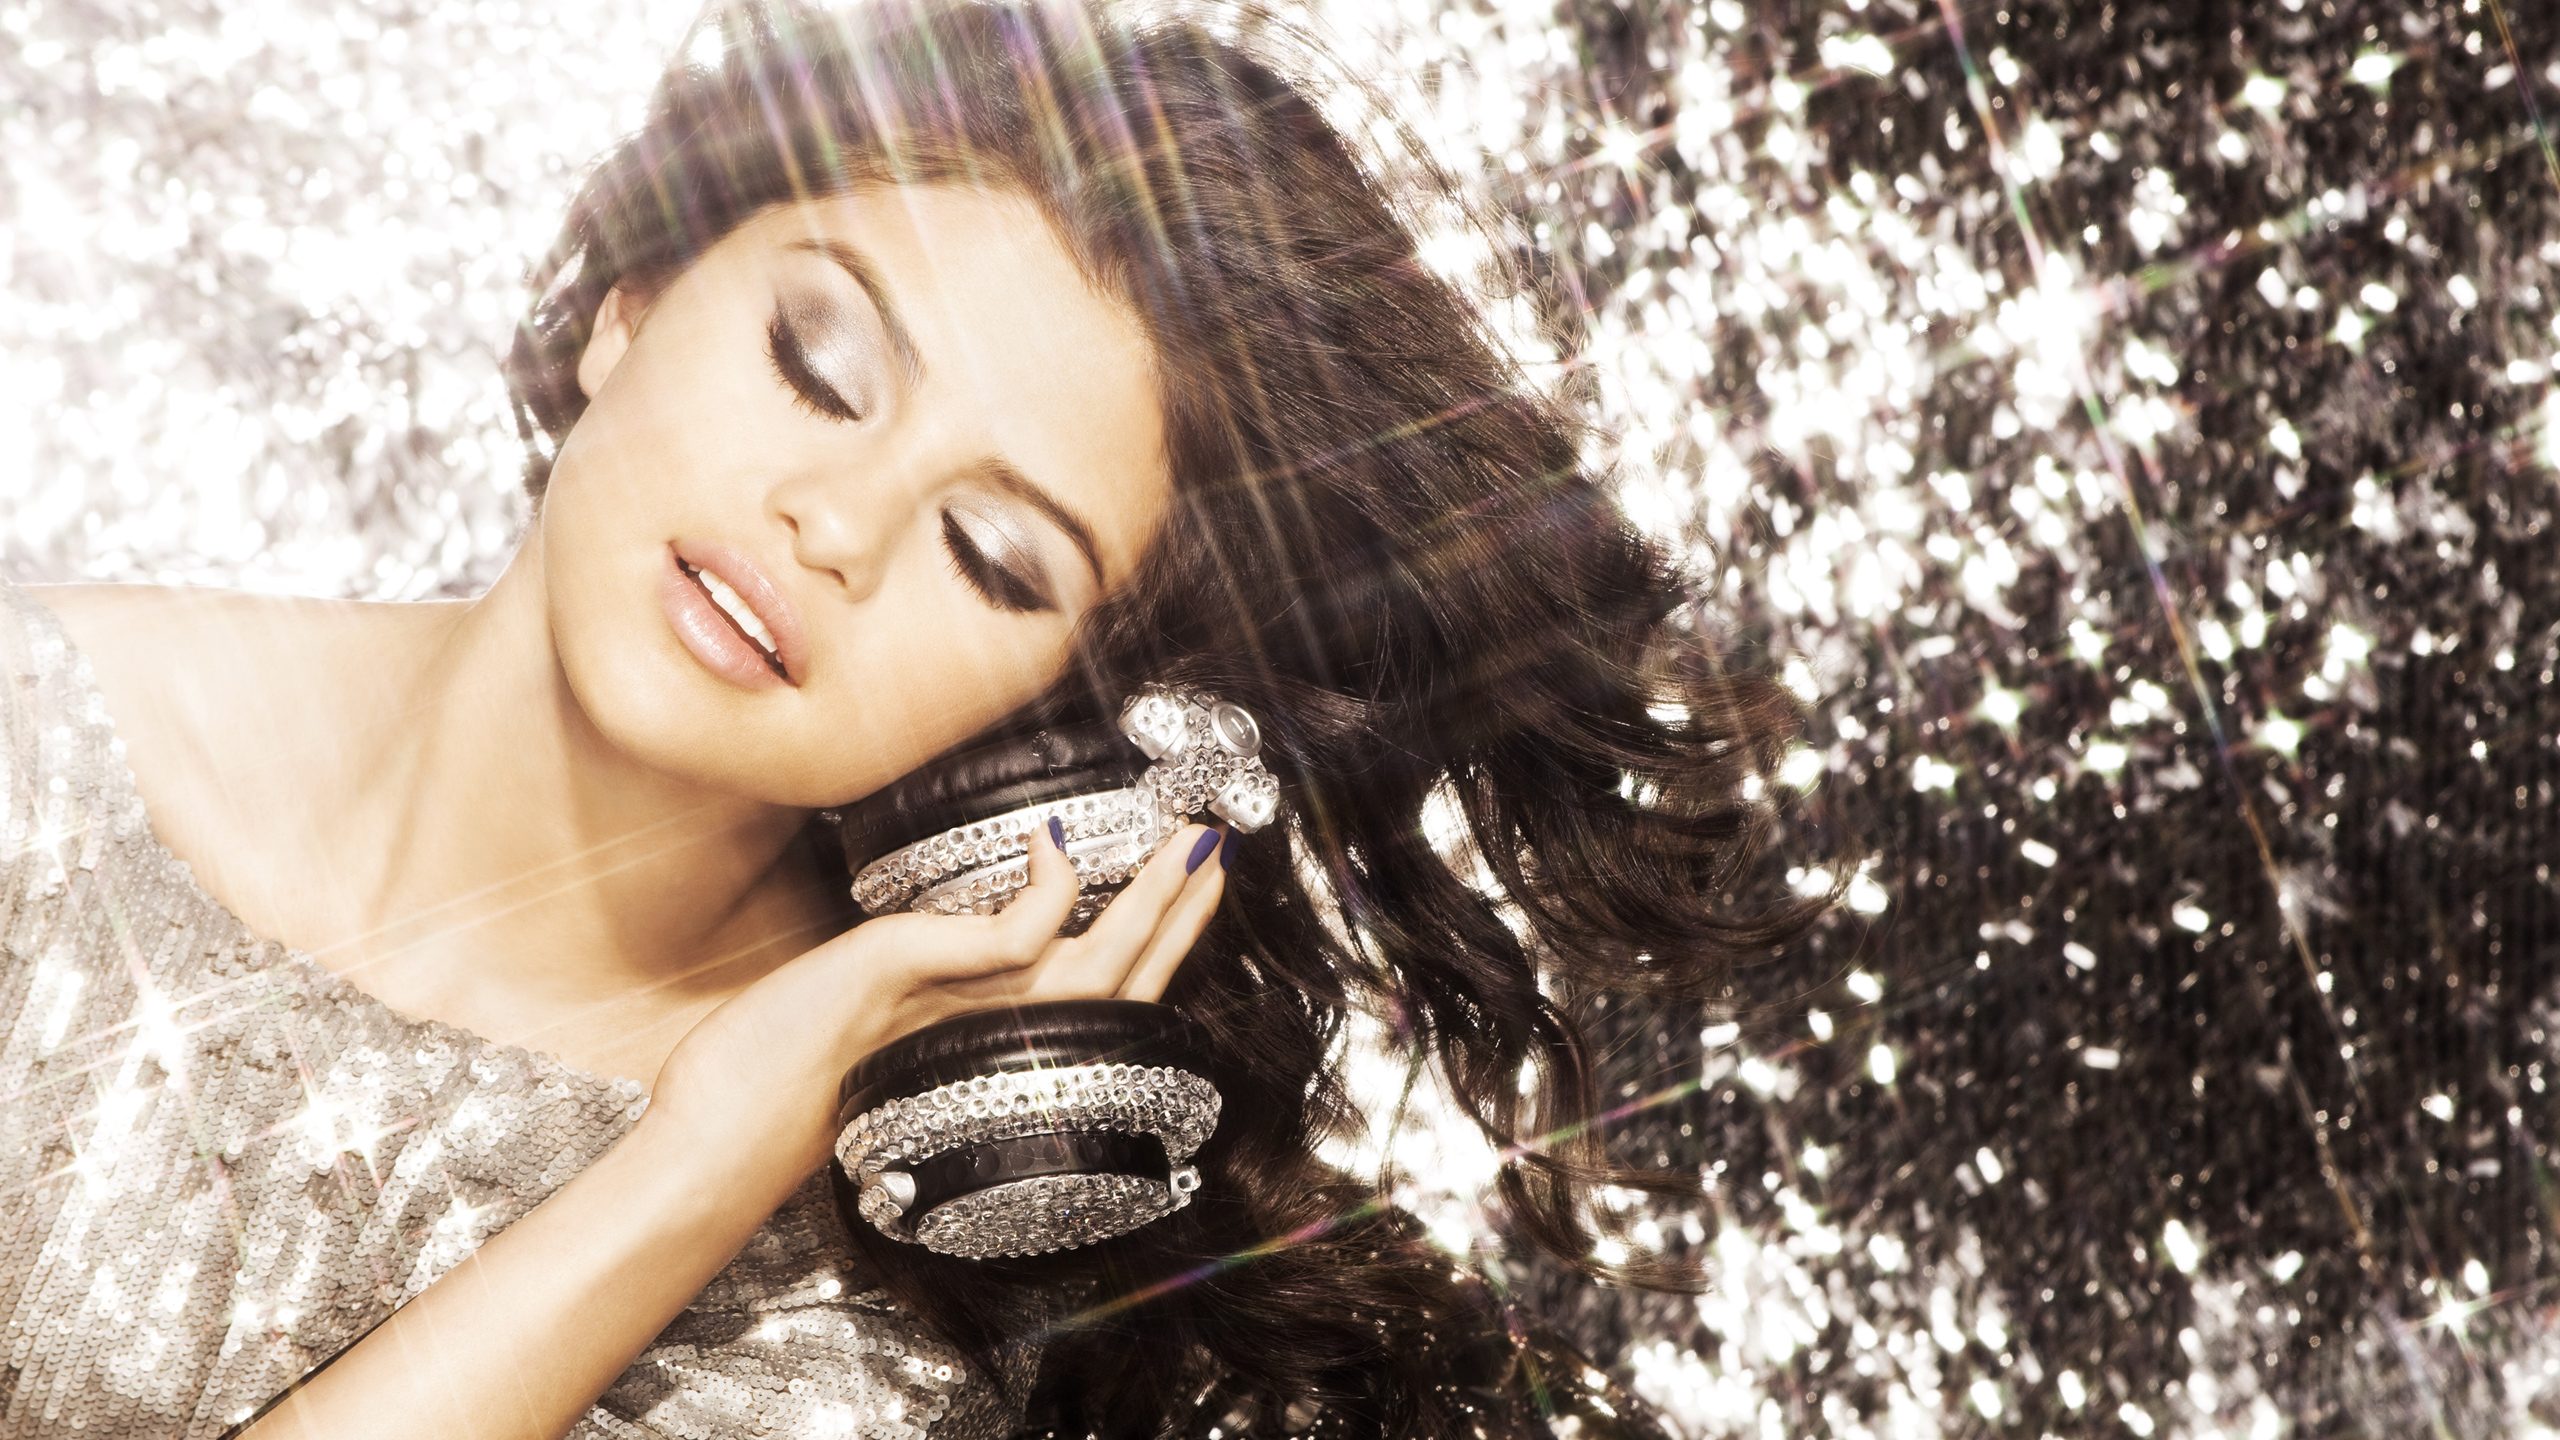 Selena Gomez 96 wallpaper